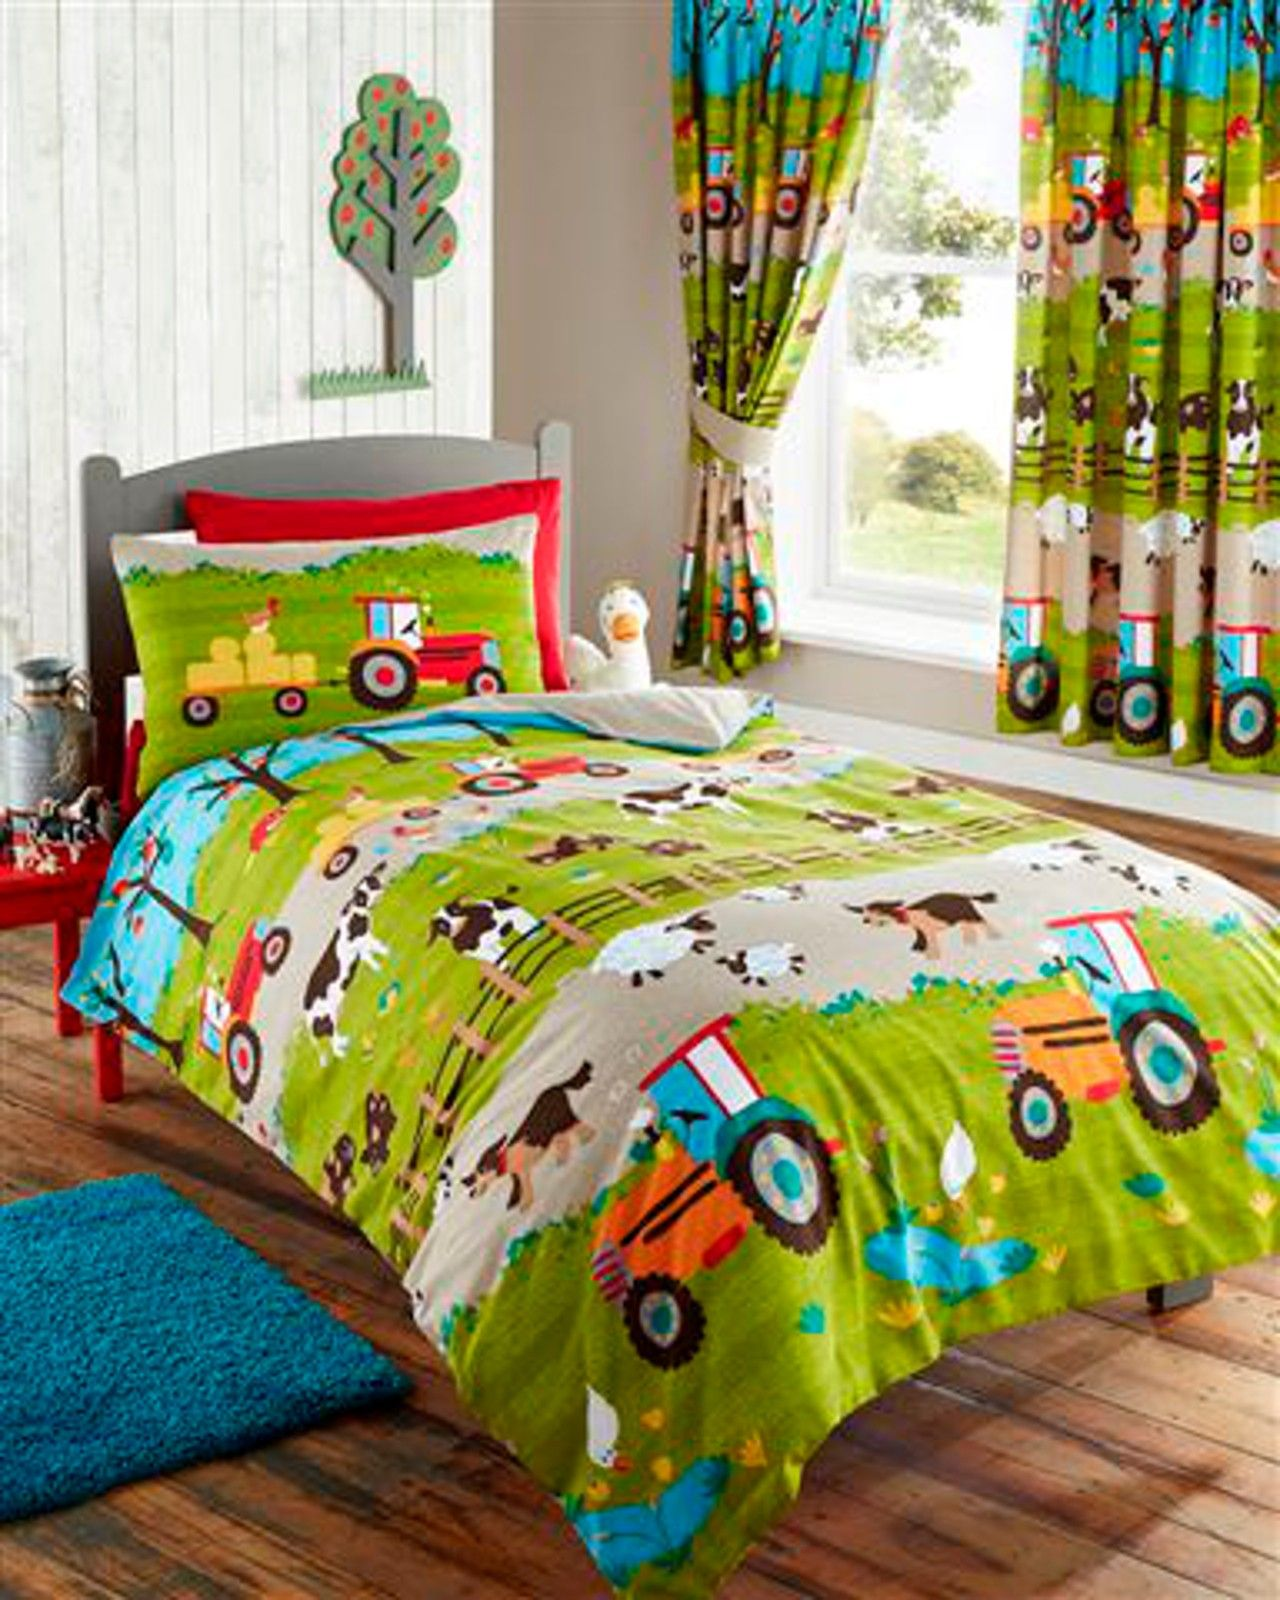 Kids' Duvet Covers: Free Shipping on orders over $45 at metools.ml - Your Online Kids' Duvet Covers Store! Get 5% in rewards with Club O!